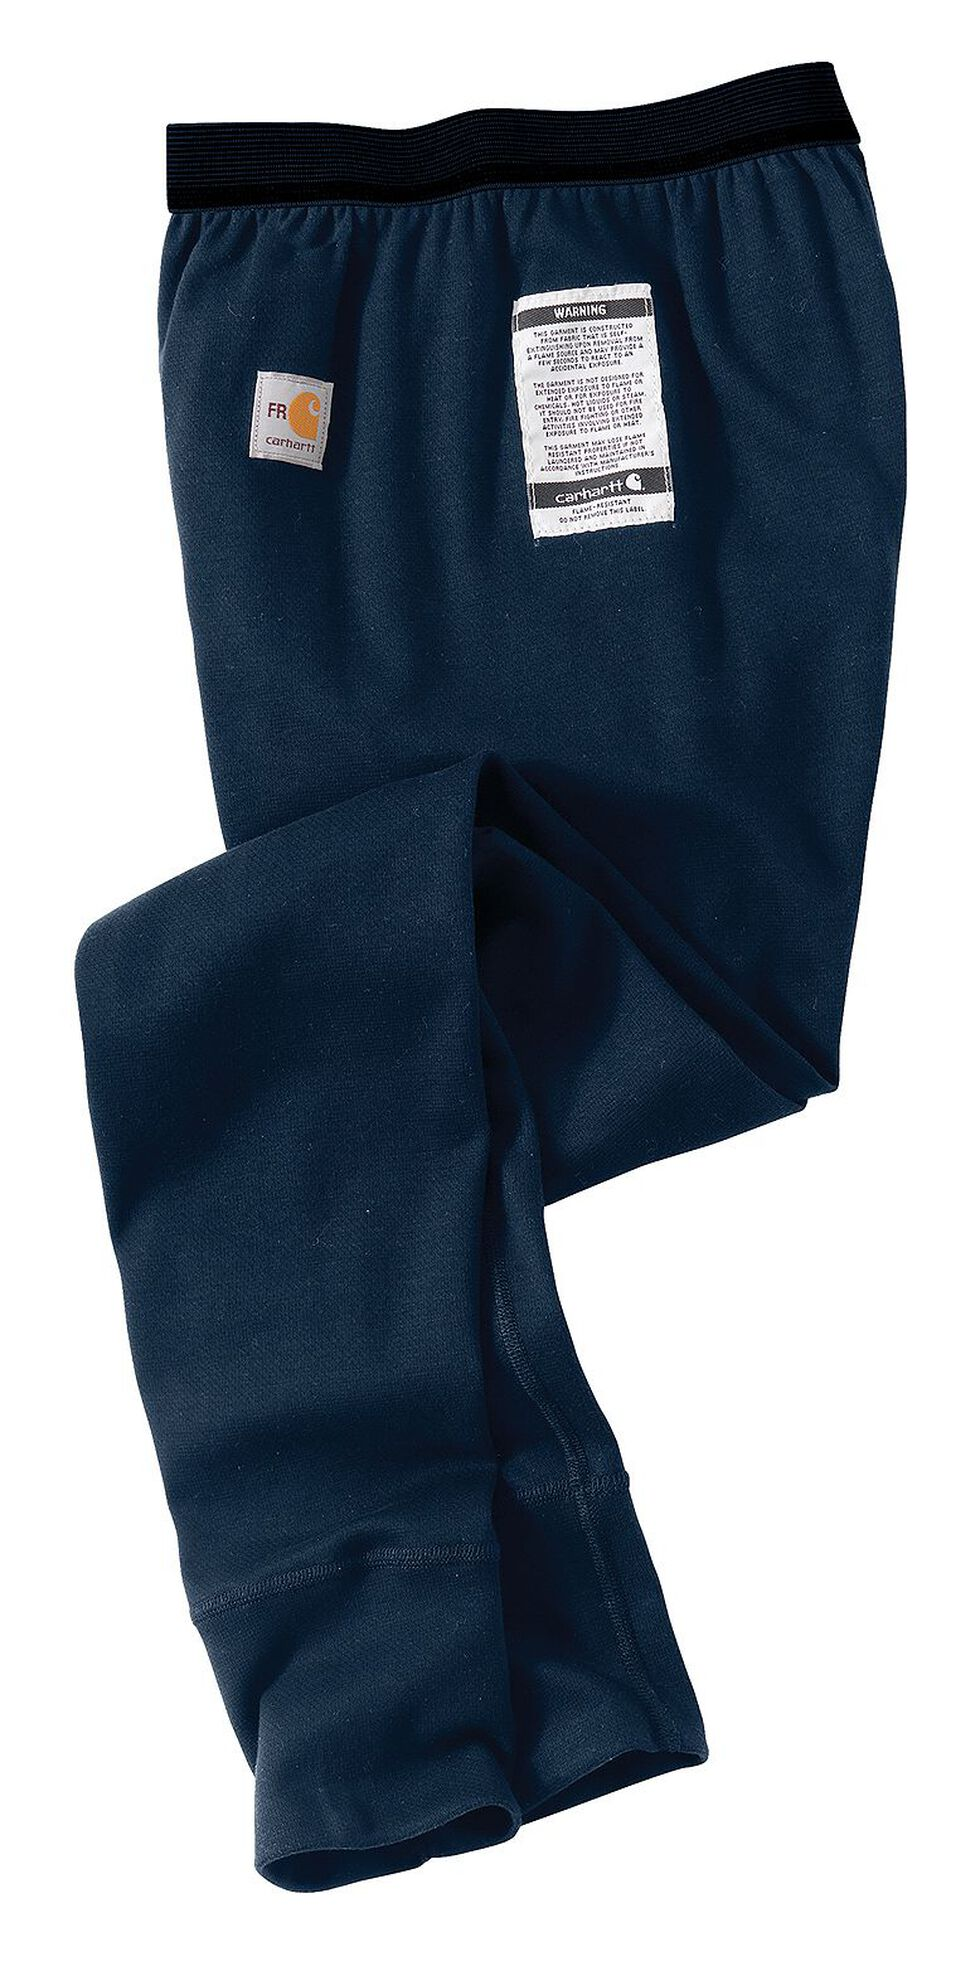 Carhartt Men's Flame-Resistant Base Force Cold Weather Bottoms - Big & Tall, Navy, hi-res